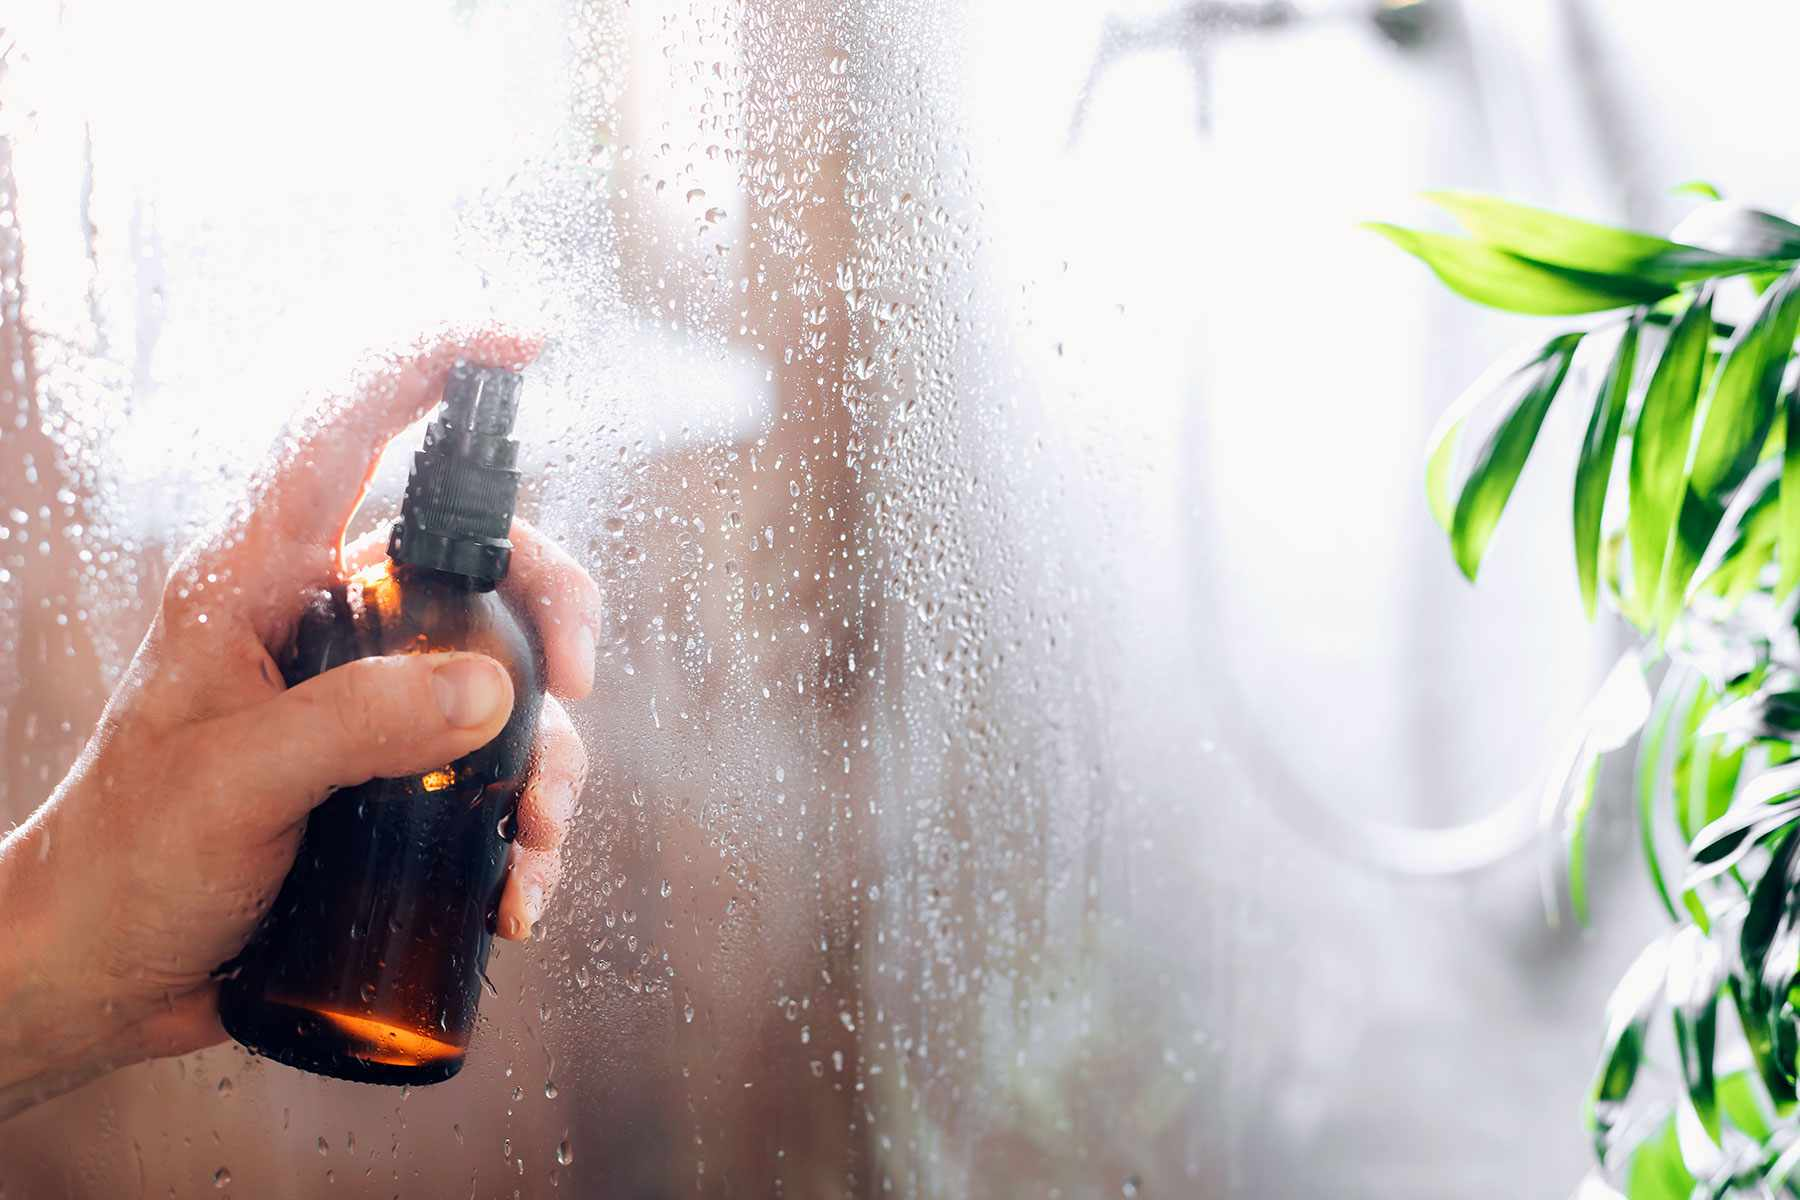 Cleaning solution sprayed on glass shower door to prevent mildew growth